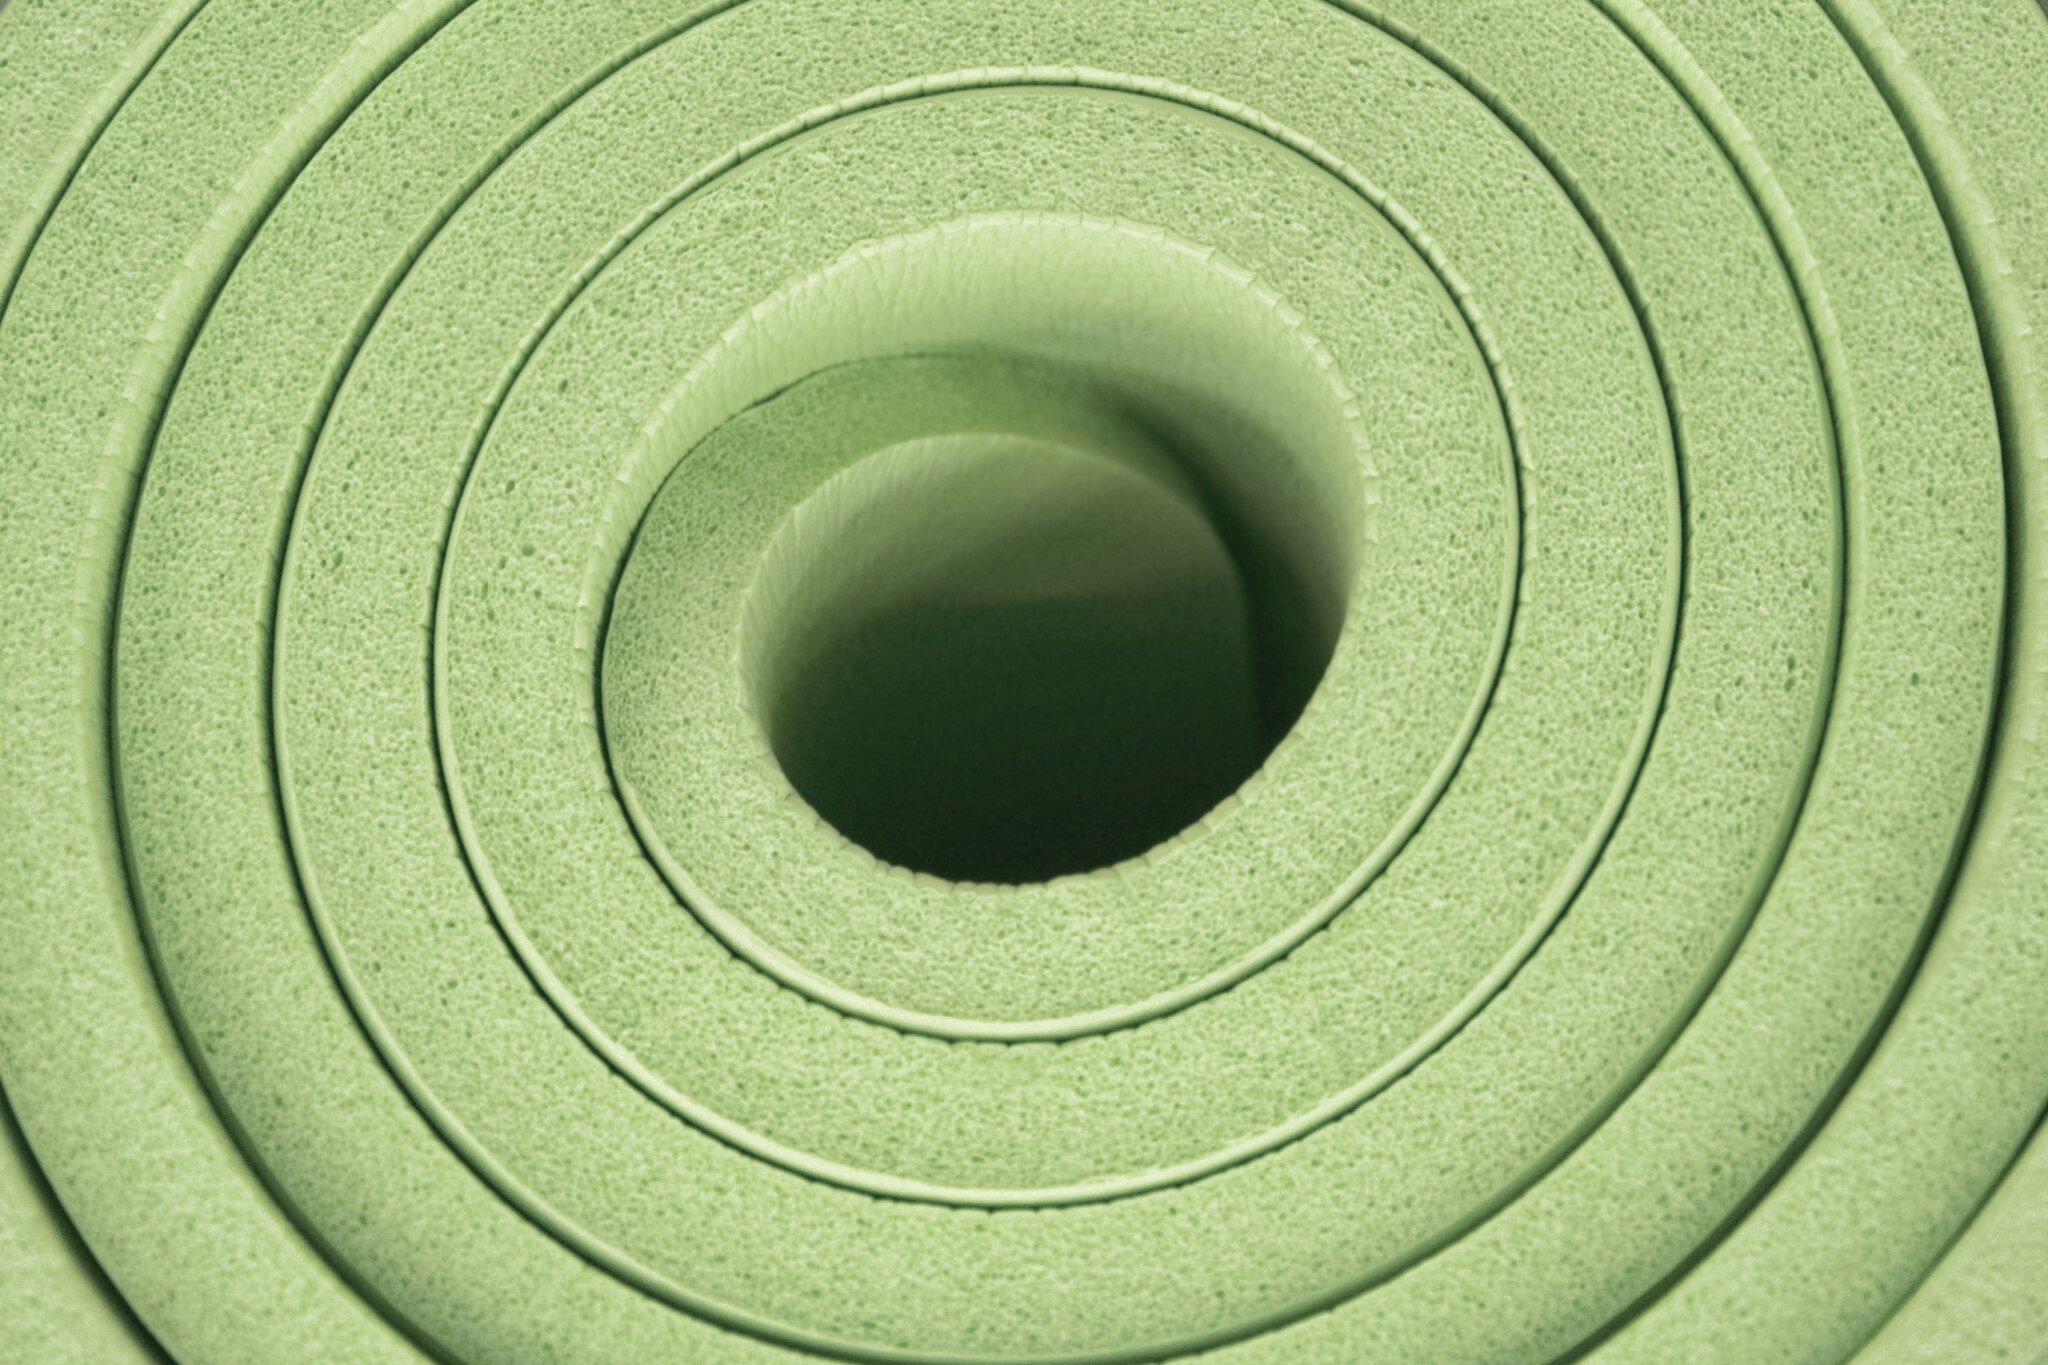 NBR yoga mats are among the thickest on the market and offer good cushion for bad knees.